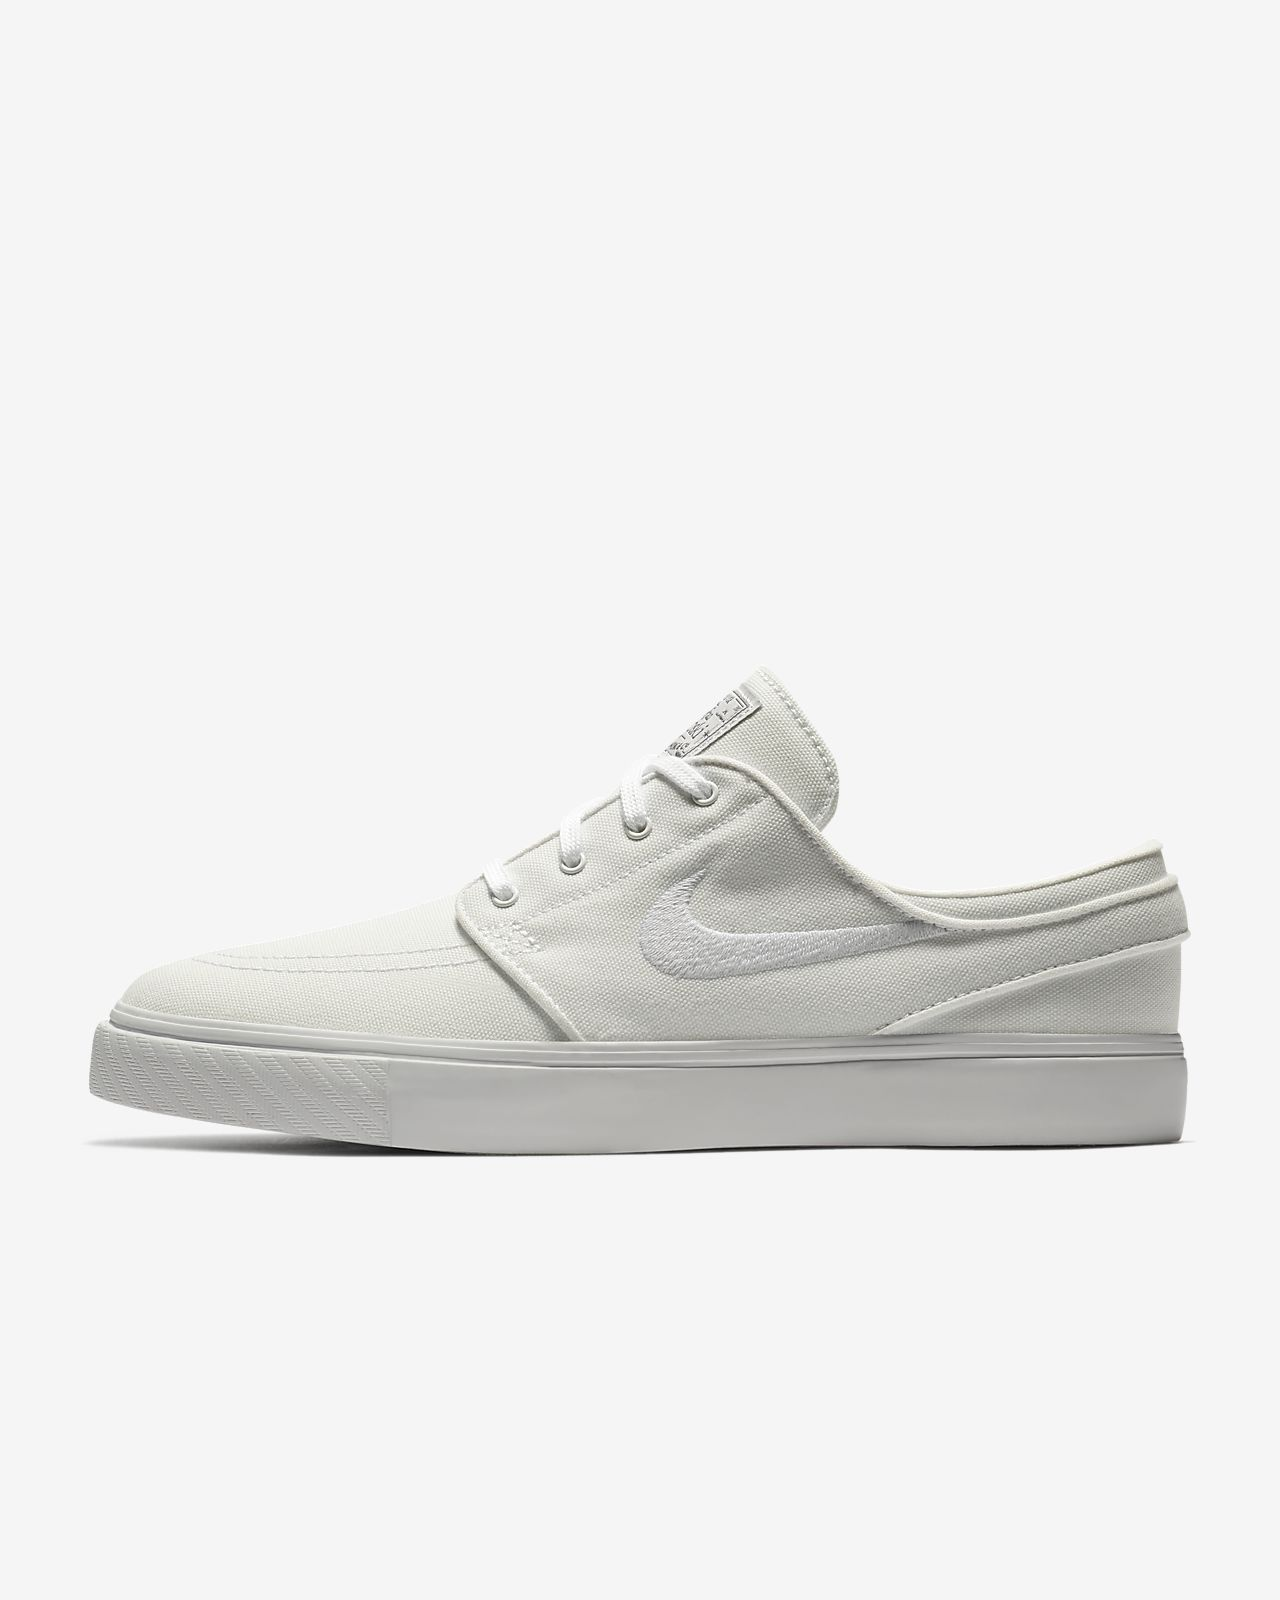 buy online 96eb5 f99aa ... Nike SB Zoom Stefan Janoski Canvas Men s Skate Shoe